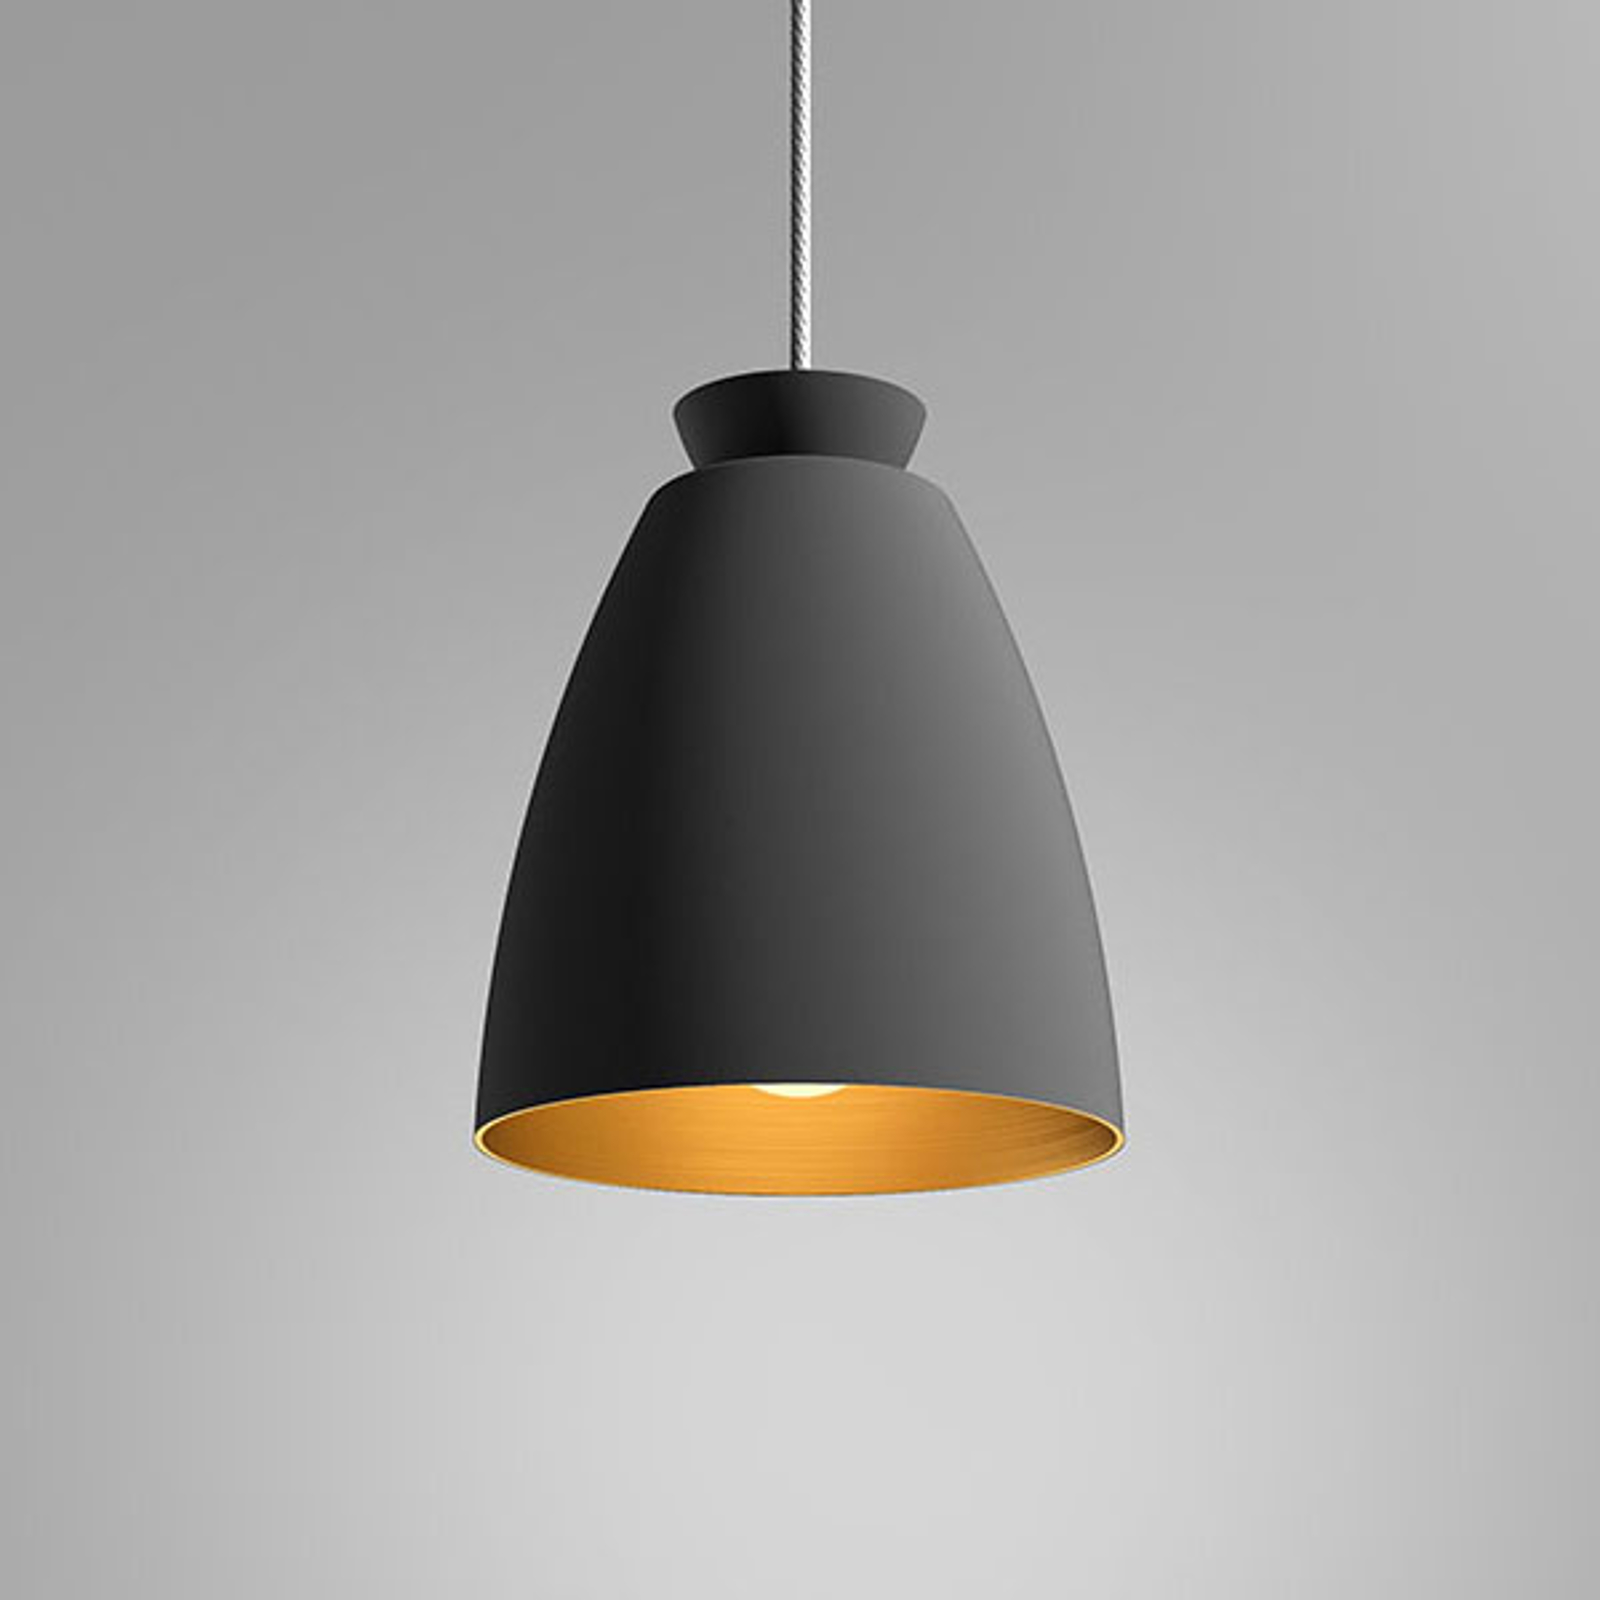 Innermost Chelsea - suspension Ø 18 cm noire